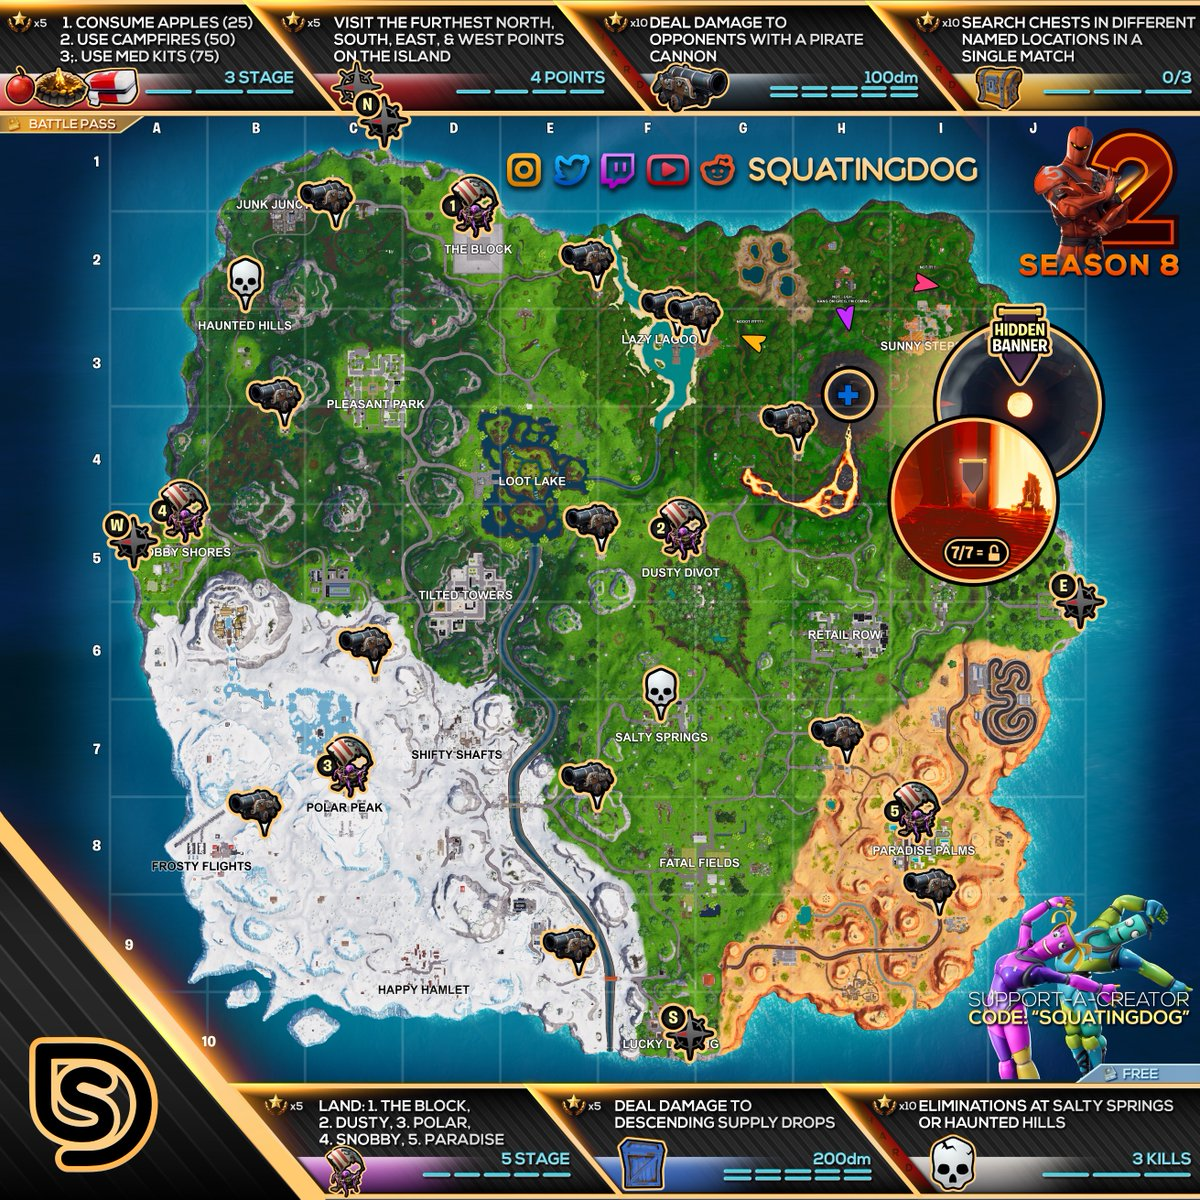 picture relating to Printable Fortnite Map named Fortnite Cheat Sheet Map For Time 8, 7 days 2 Troubles